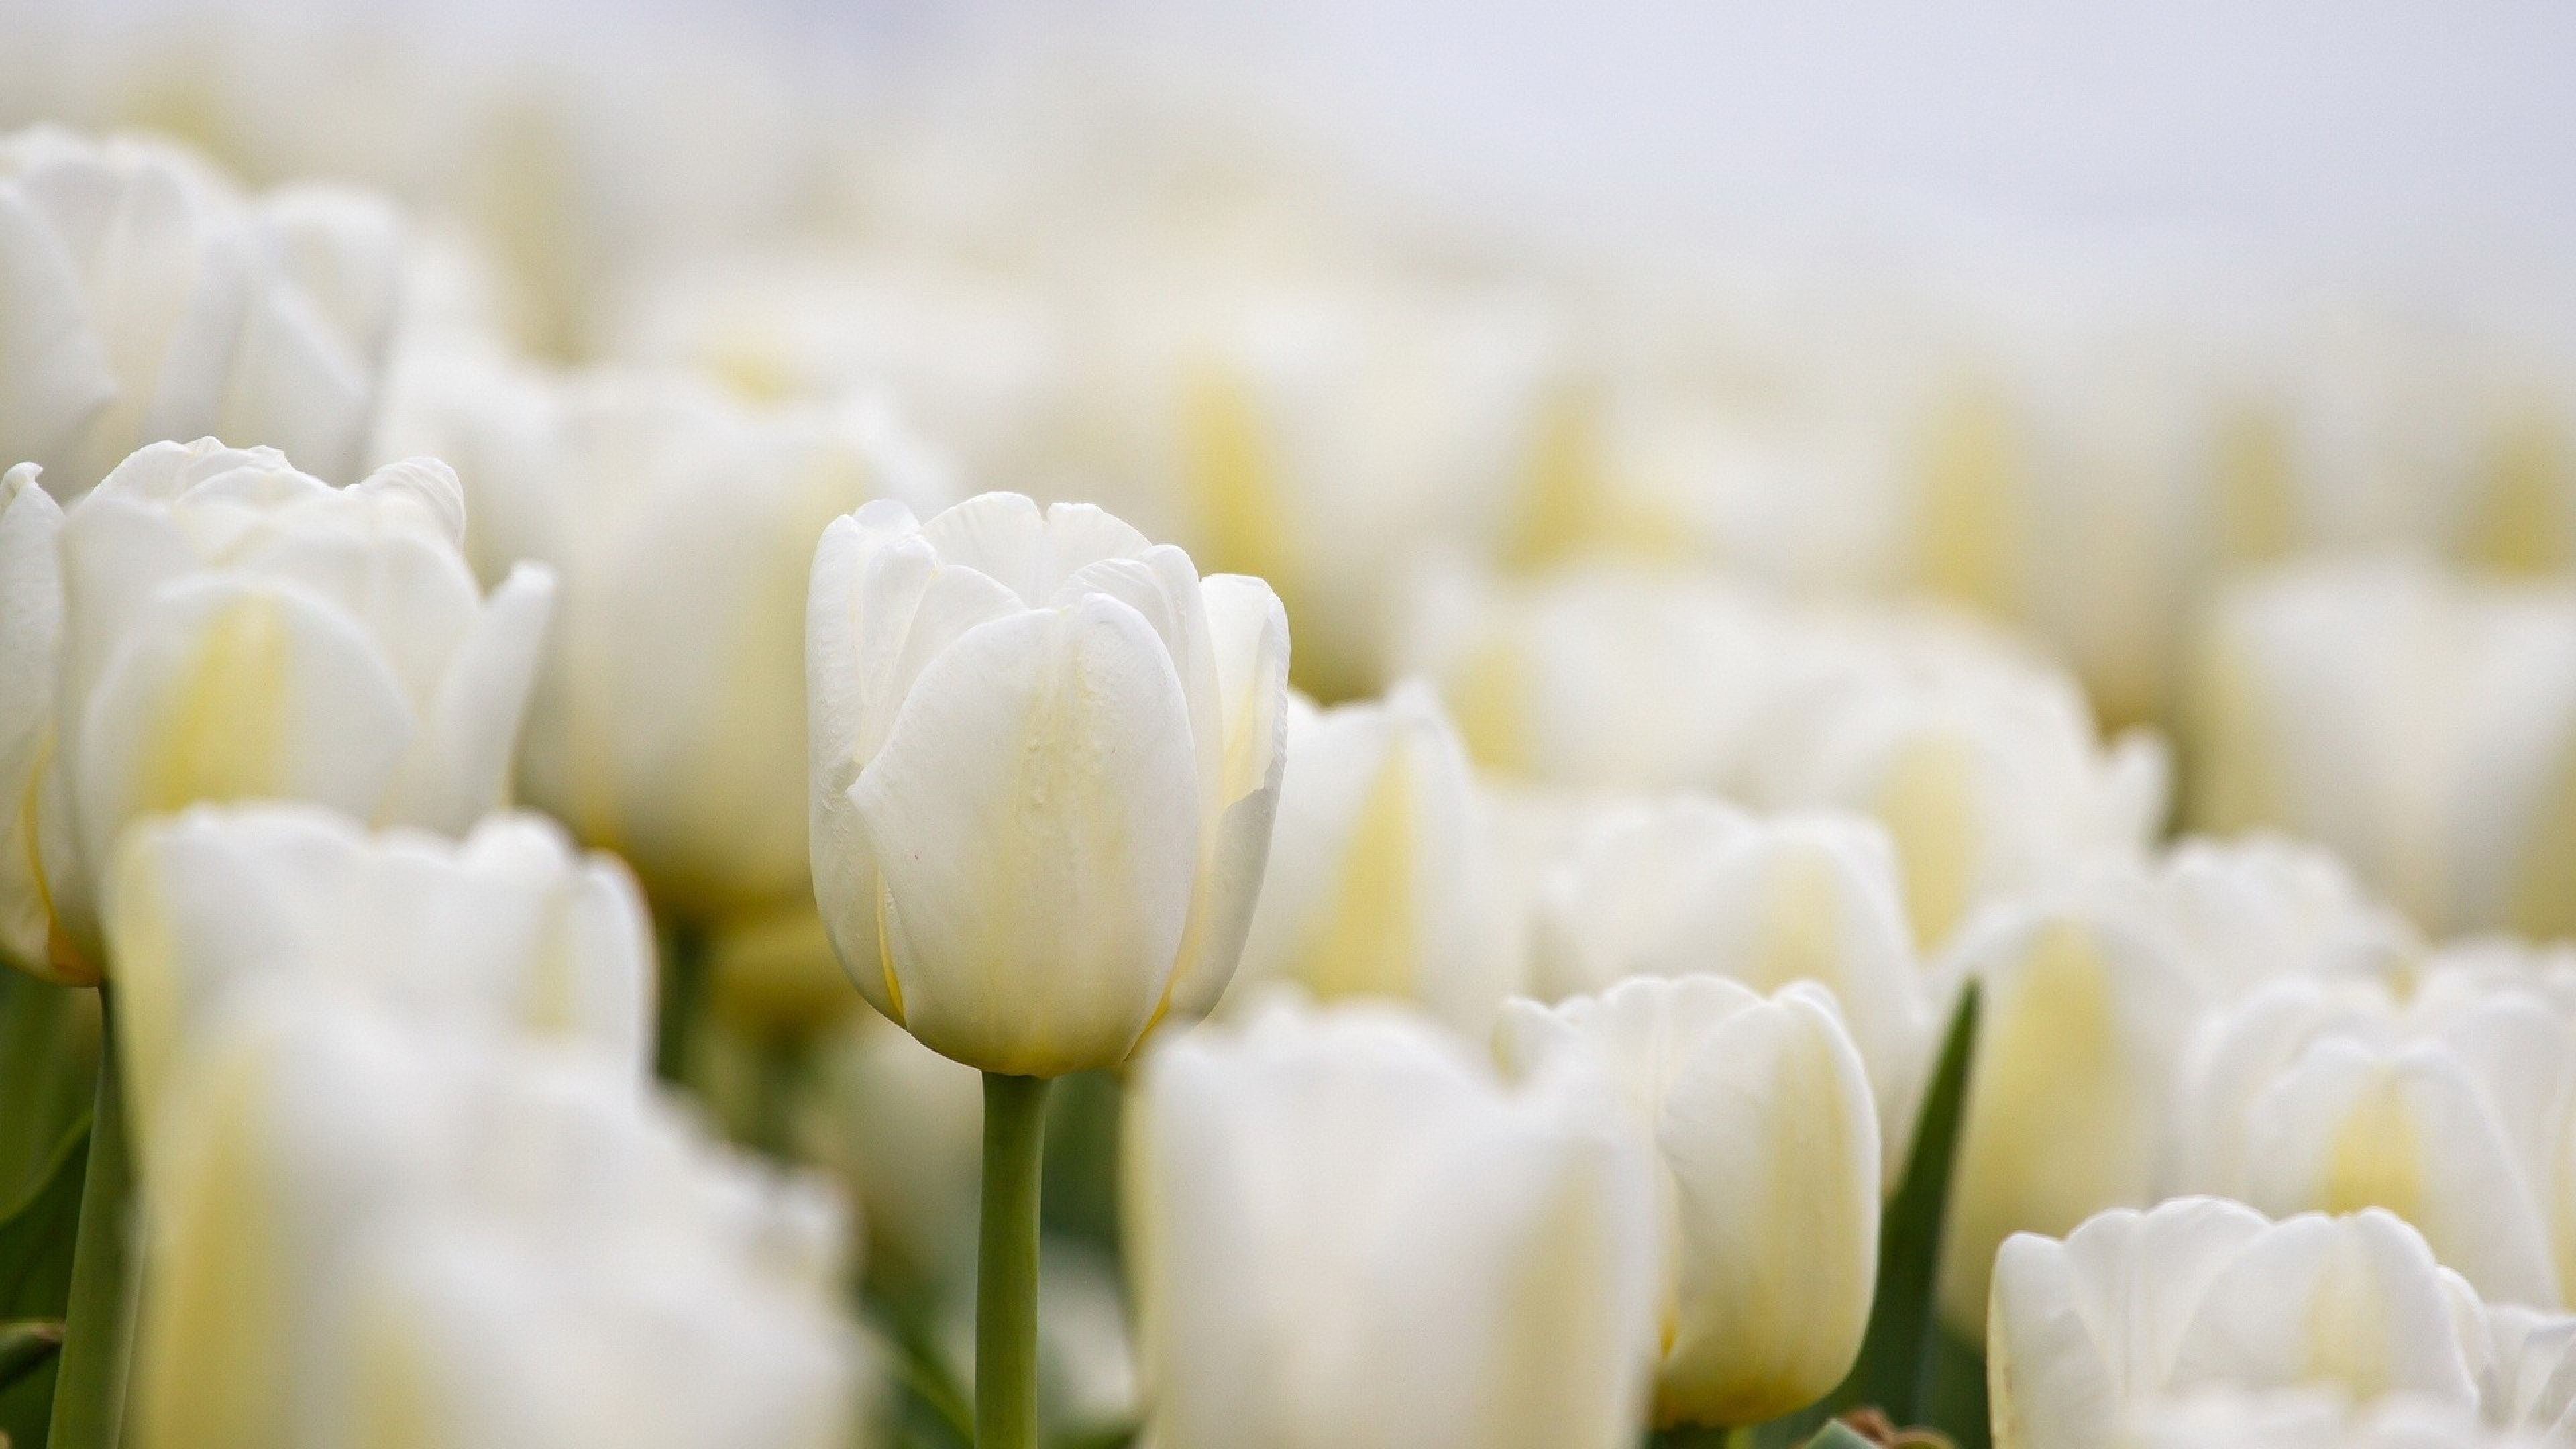 White Flowers HD Wallpapers Backgrounds of Your Choice HD